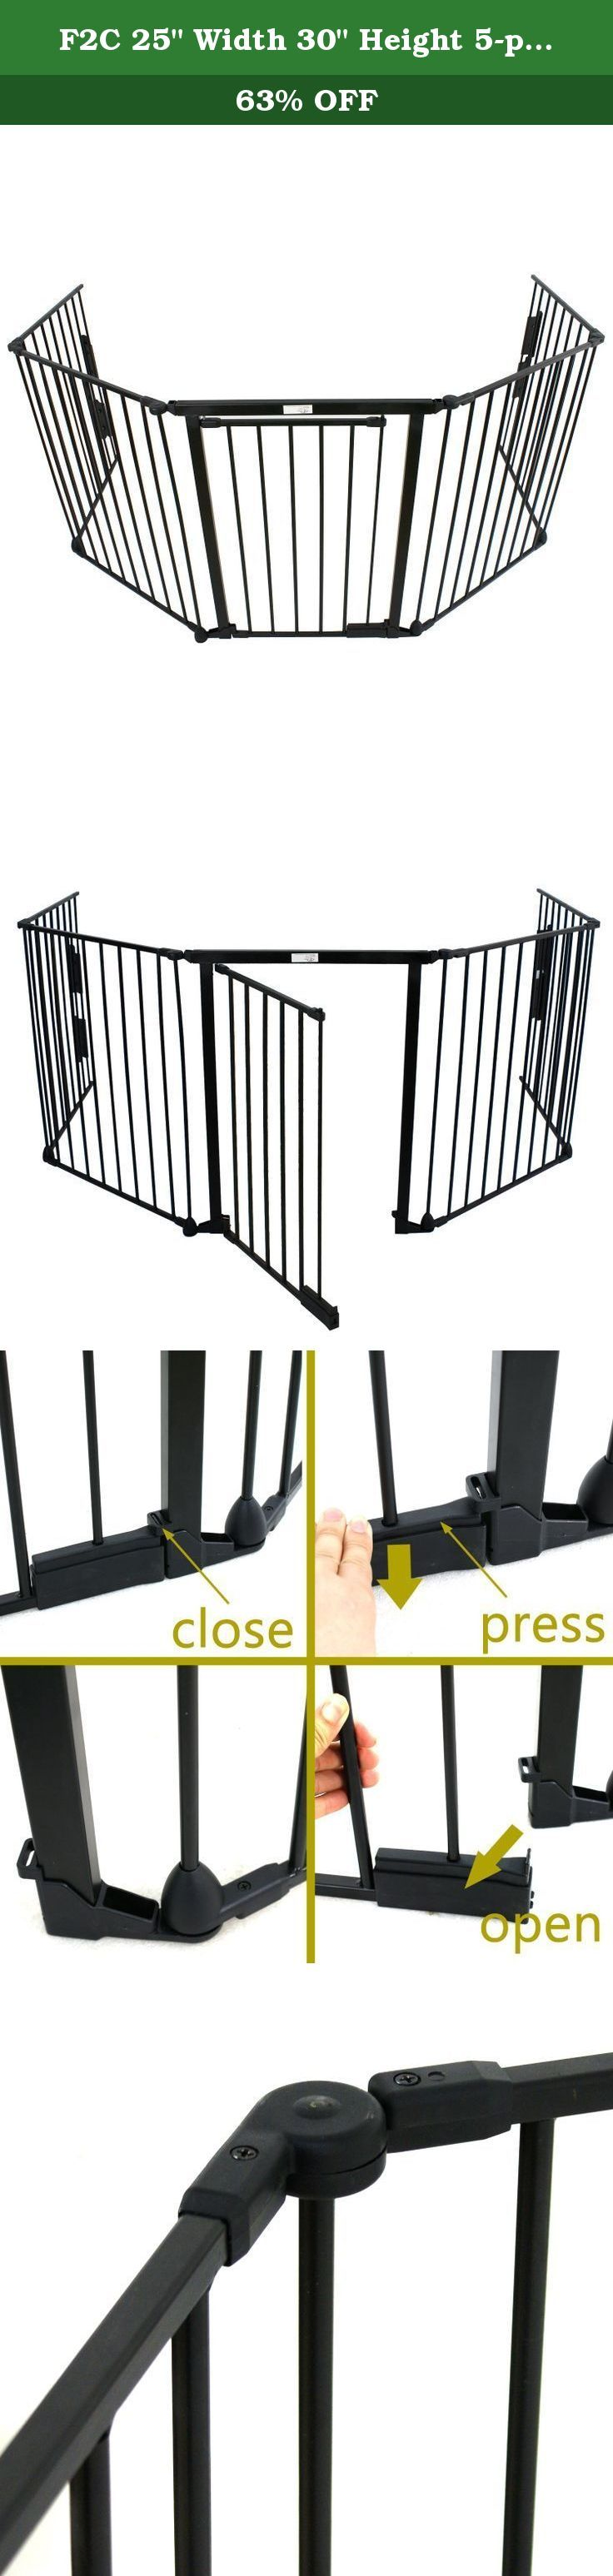 "F2C 25"" Width 30"" Height 5-panels Baby Pet Safety Fence Hearth Gate Fireplace Gate Screen Metal. NEW PRODUCT WITH FACTORY PACKAGING FEATURES Safety for use around fireplaces, grills, wood burning stoves, etc. Door with handle for easy access All joints easily rotate and lock for secure attachment Quick release, adjustable wall mount hardware Door section can be placed anywhere within the layout Constructed of heavy duty tubular steel Can be connected as a freestanding play area with…"